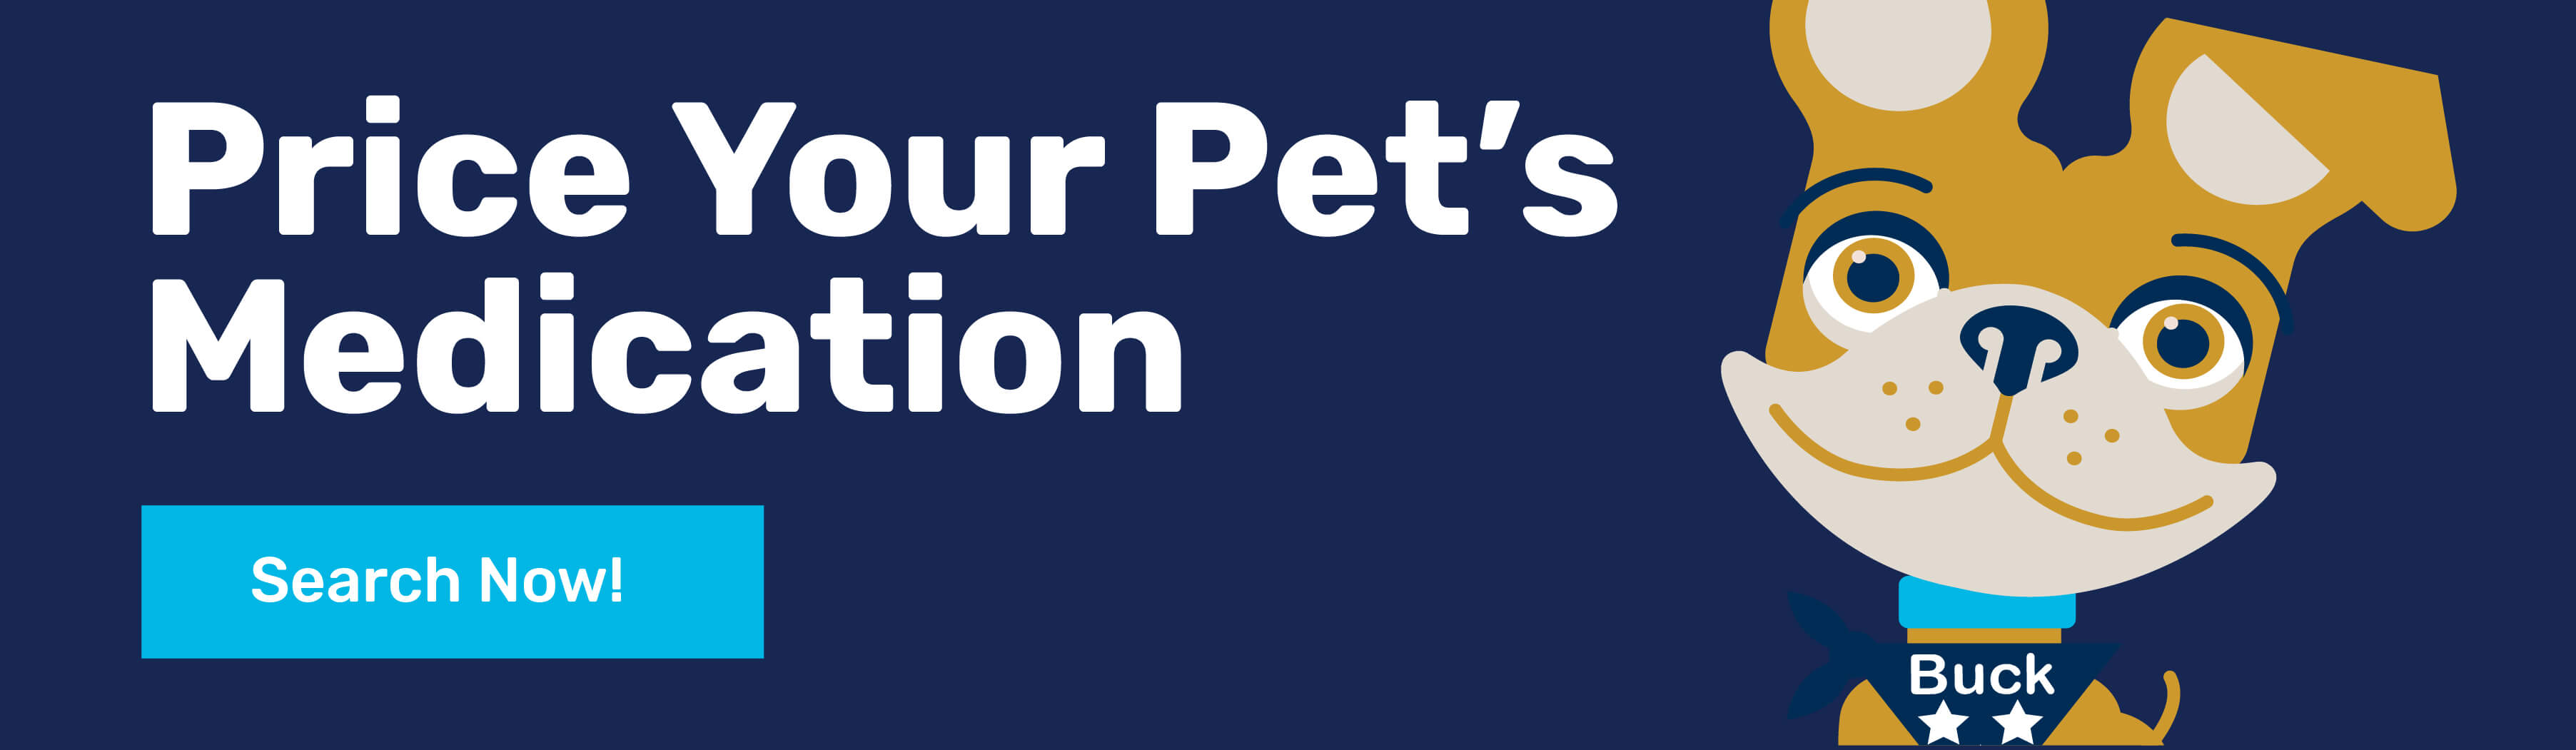 Price Your Pet's Medication